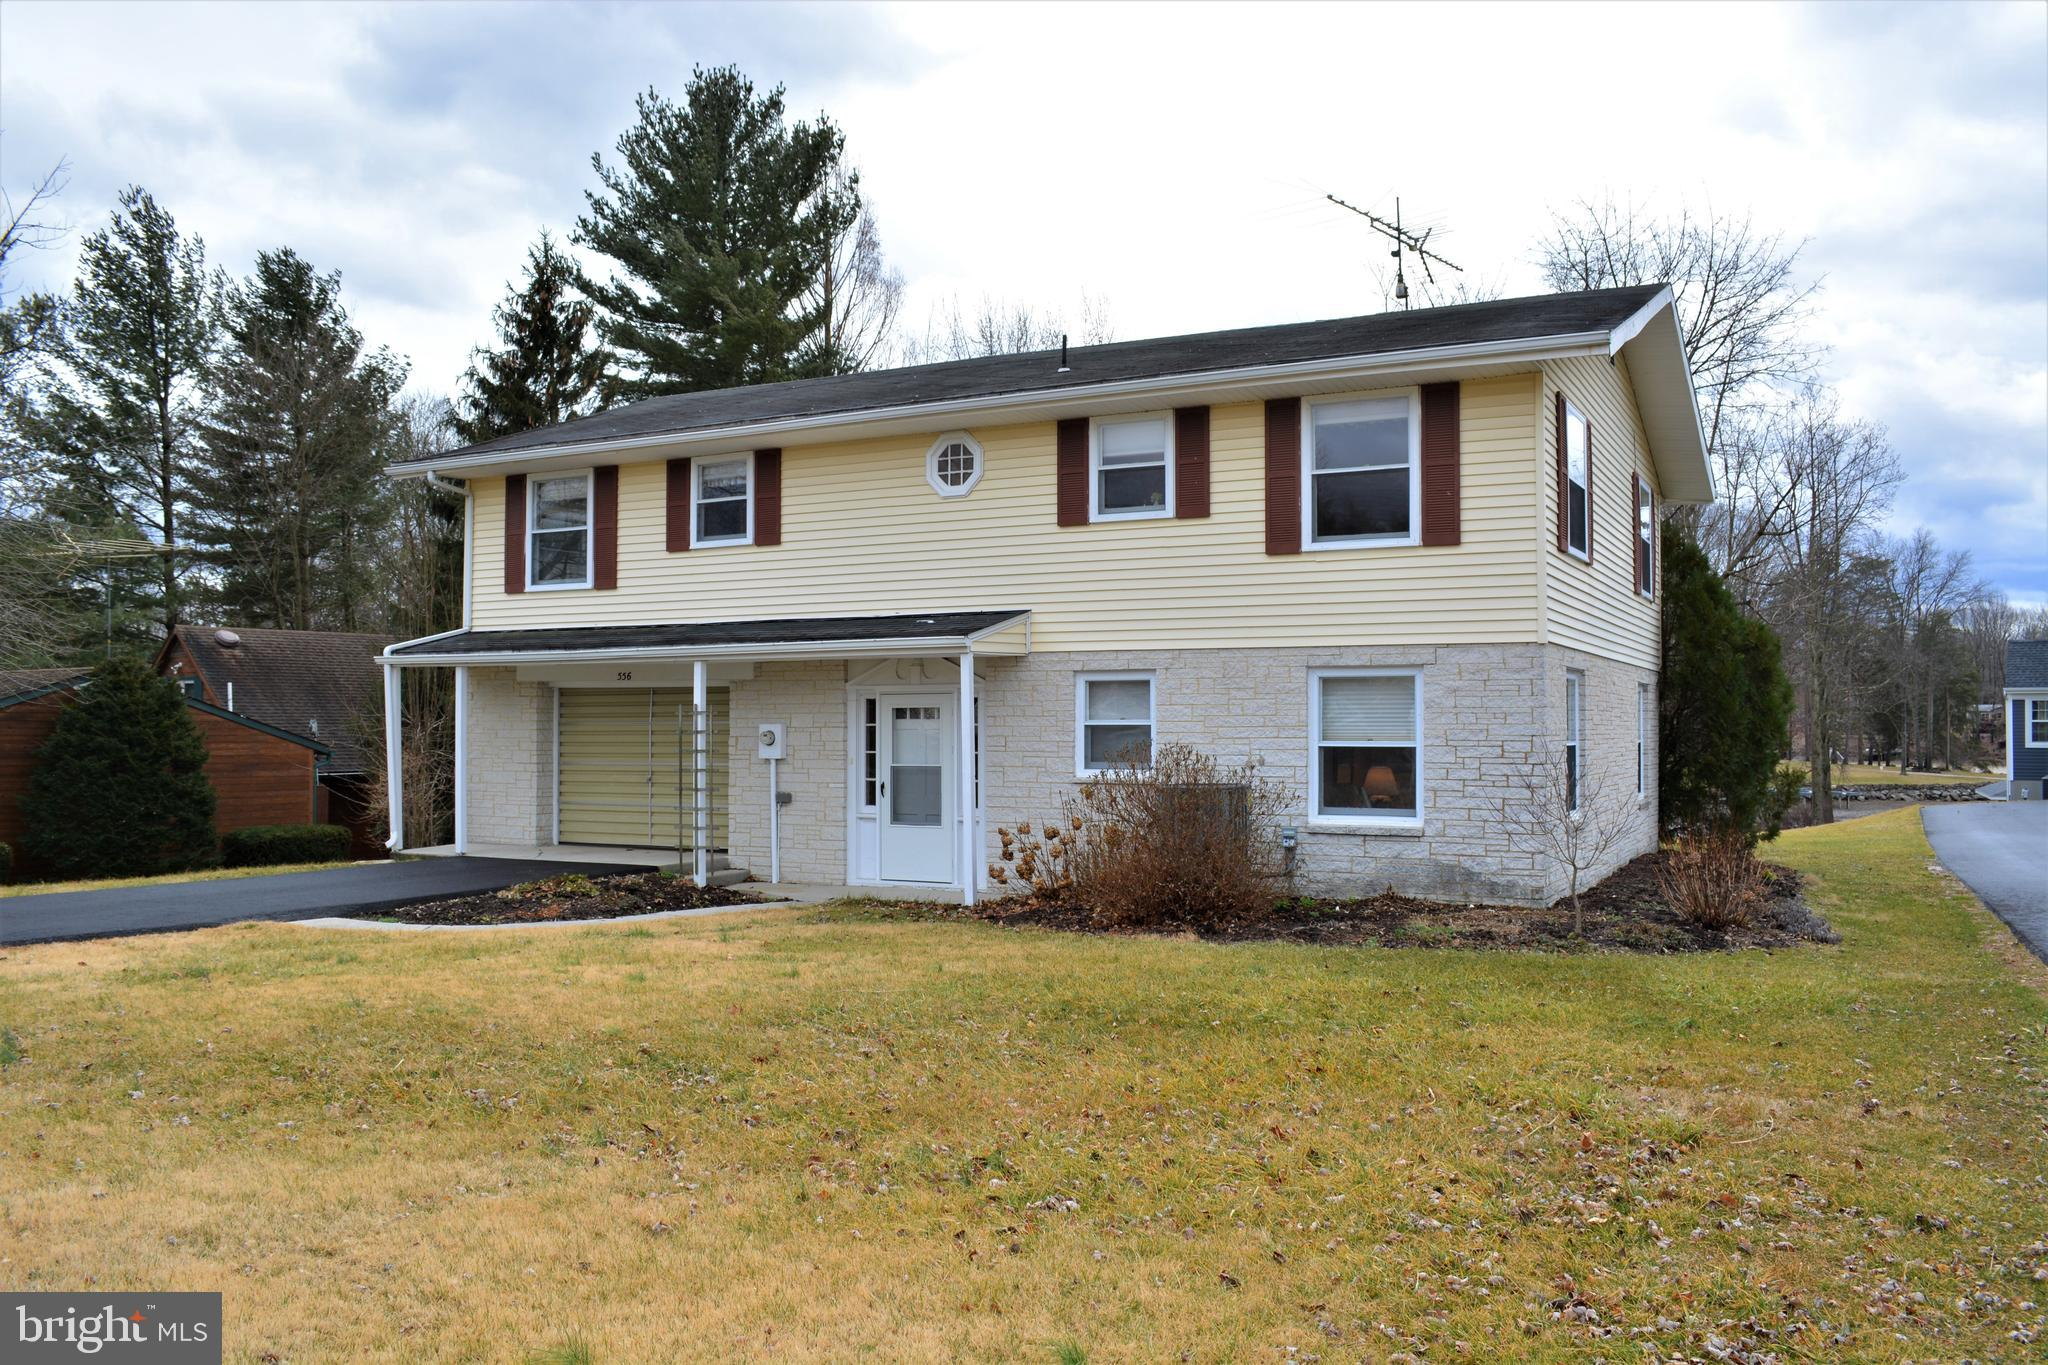 556 LAKE MEADE DRIVE, EAST BERLIN, PA 17316